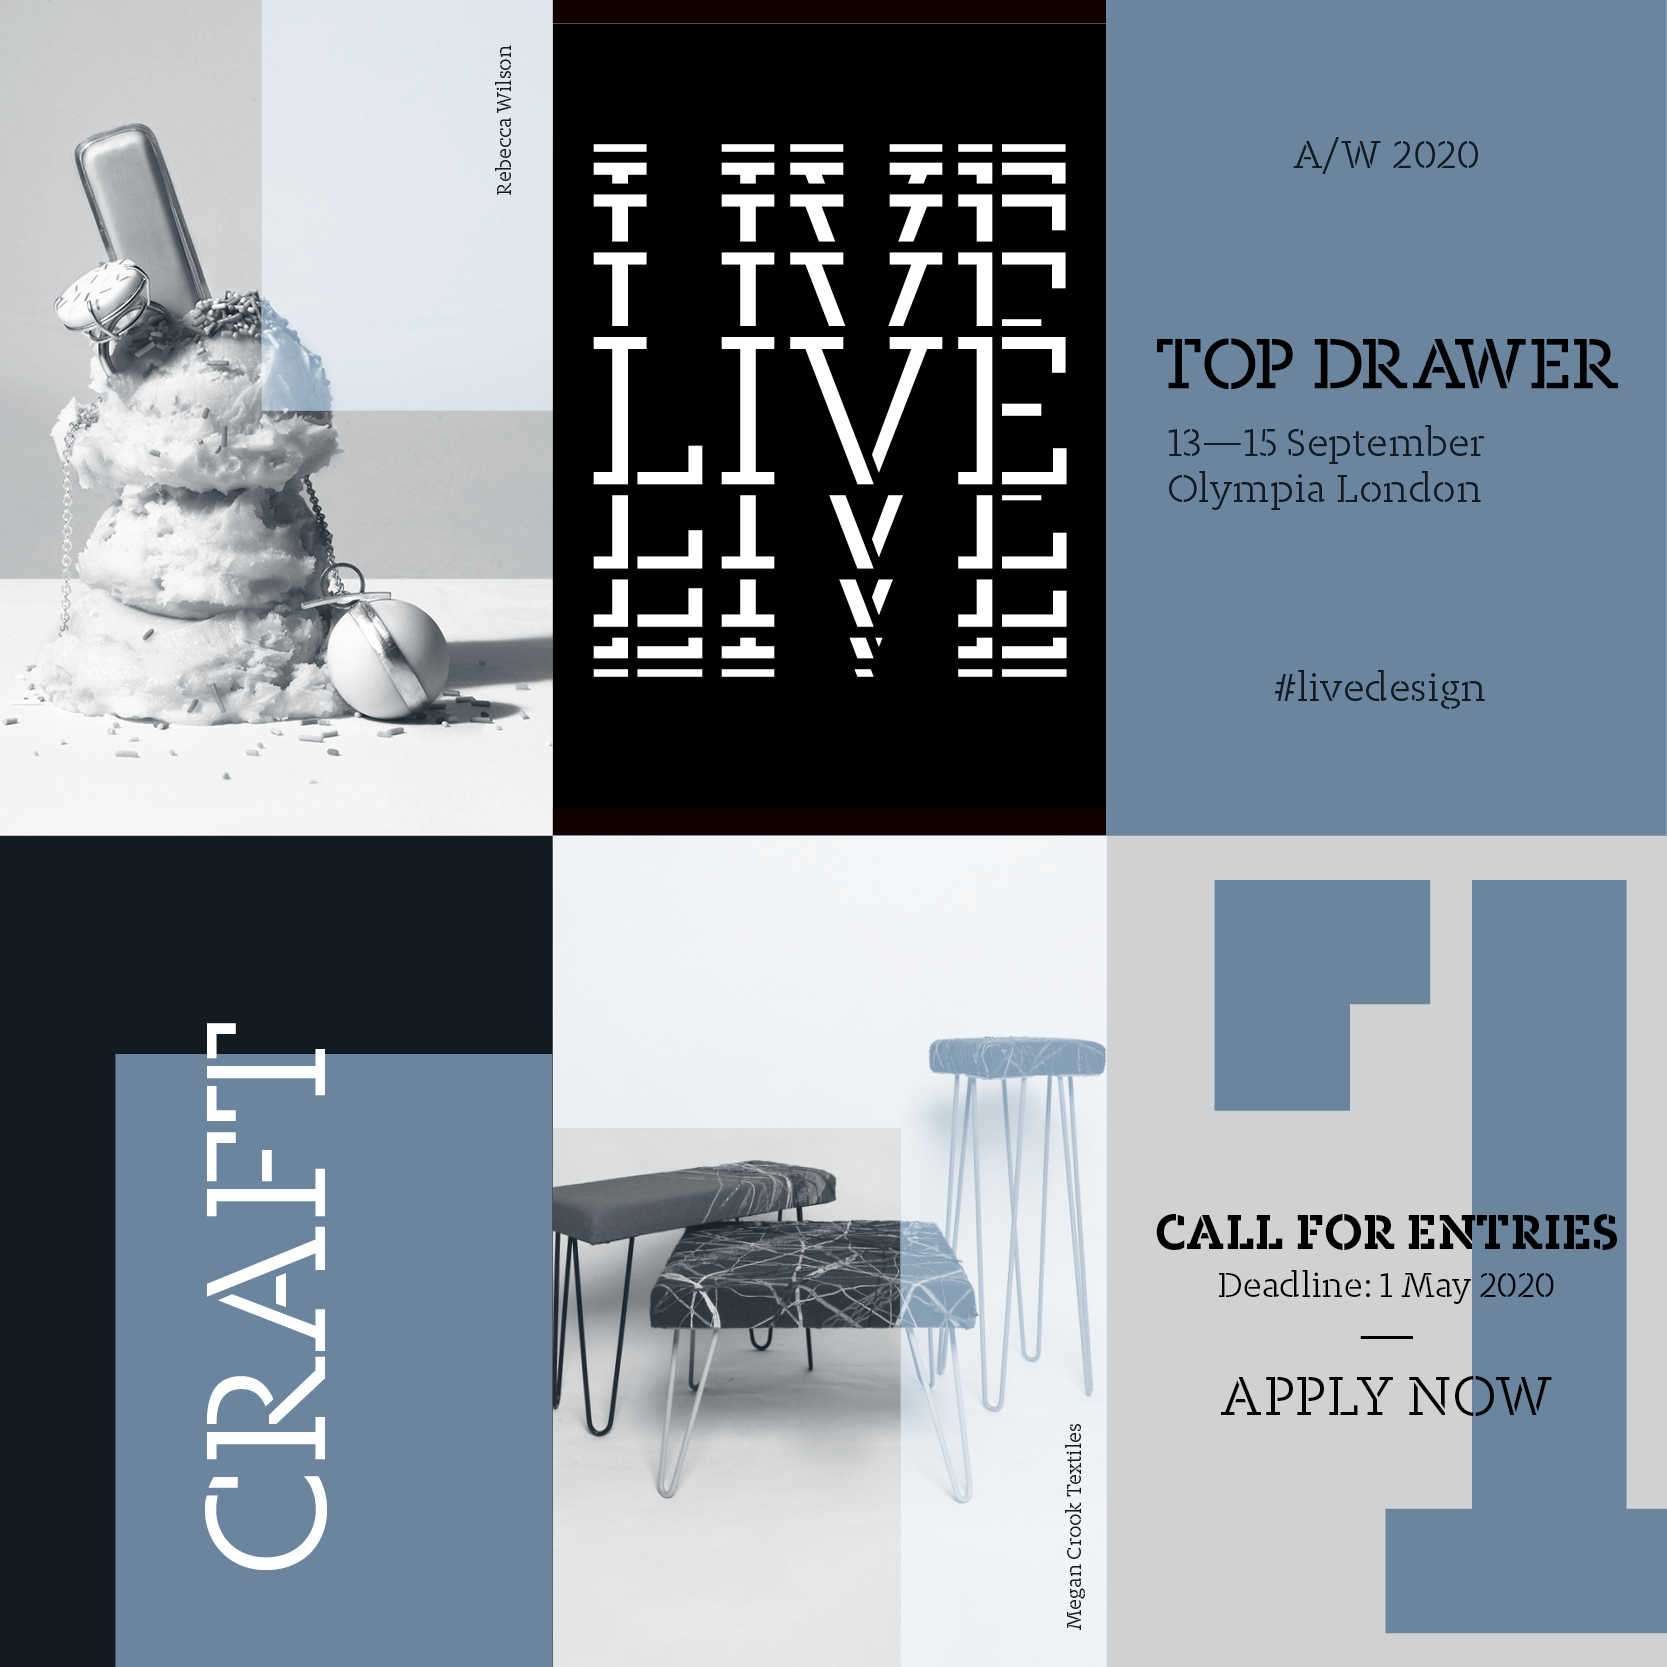 CRAFT | Top Drawer A/W20 Edition: Call for entries